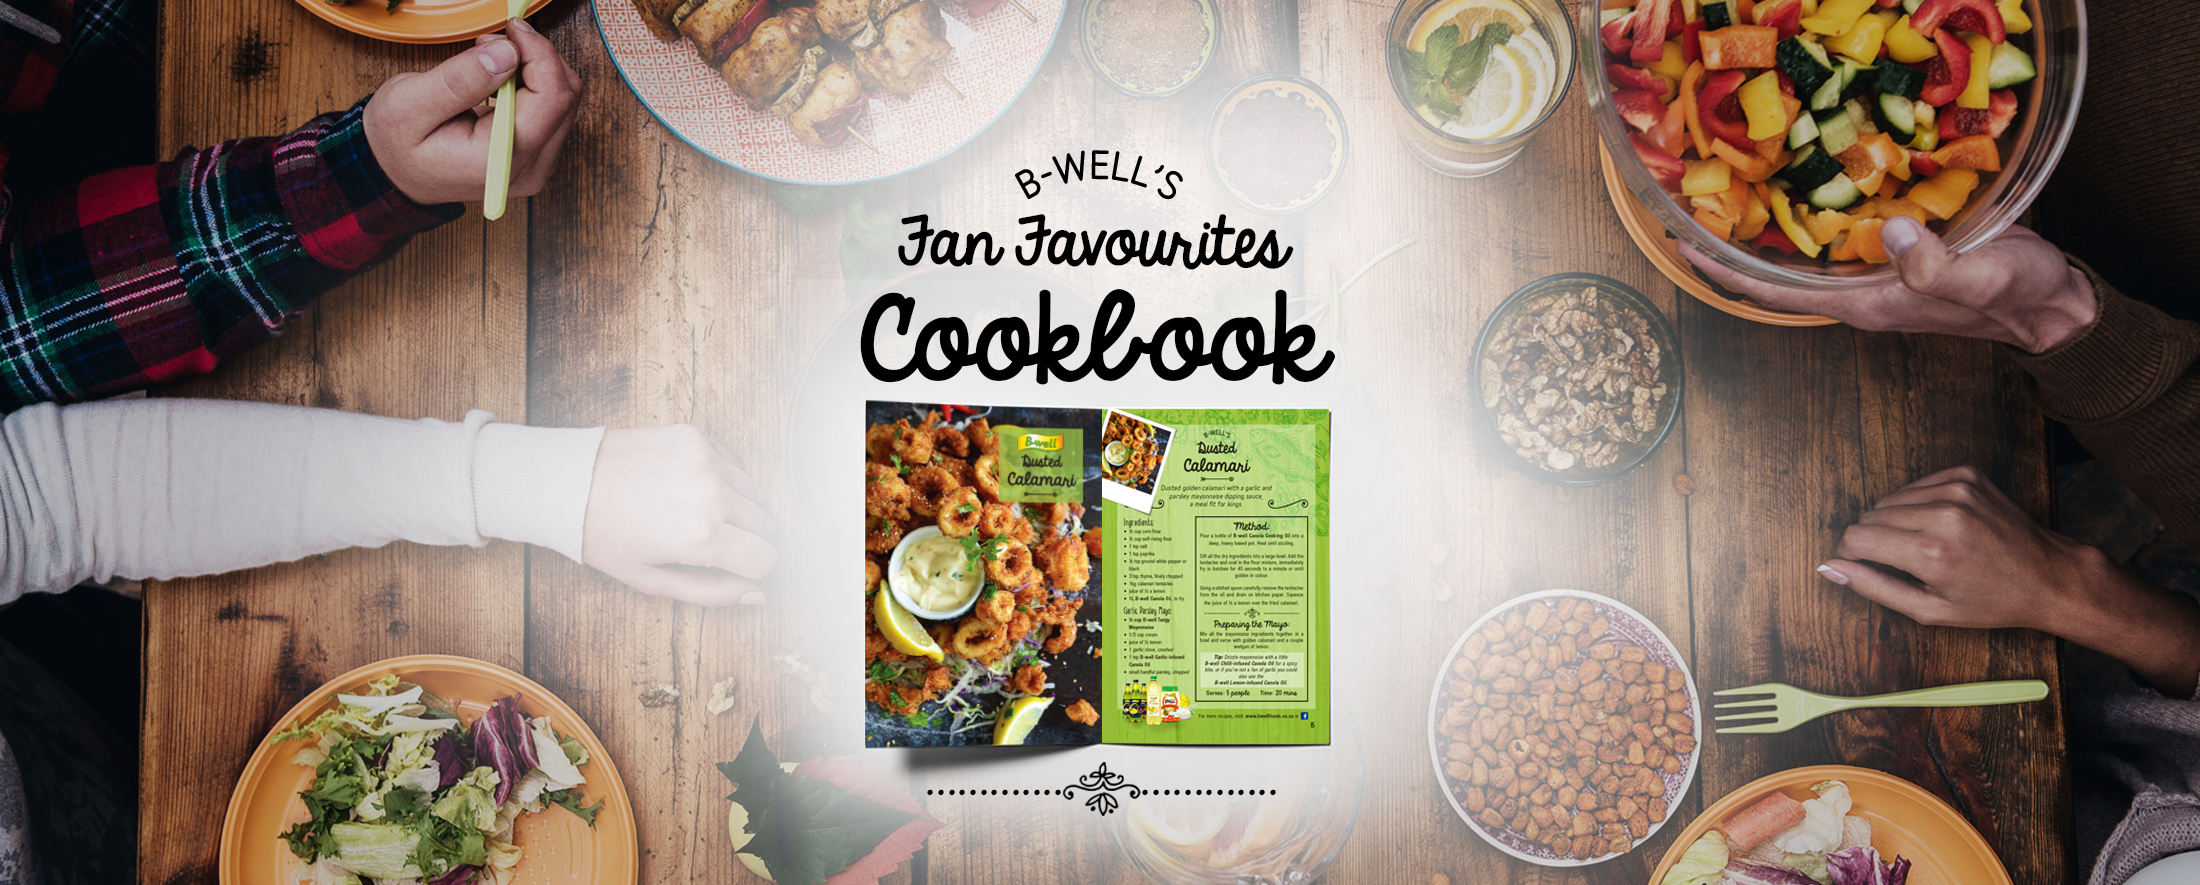 Blog we wanted to create a recipe book that inspired people to cook again to show people just how easy it is to recreate restaurant quality dishes from the forumfinder Image collections